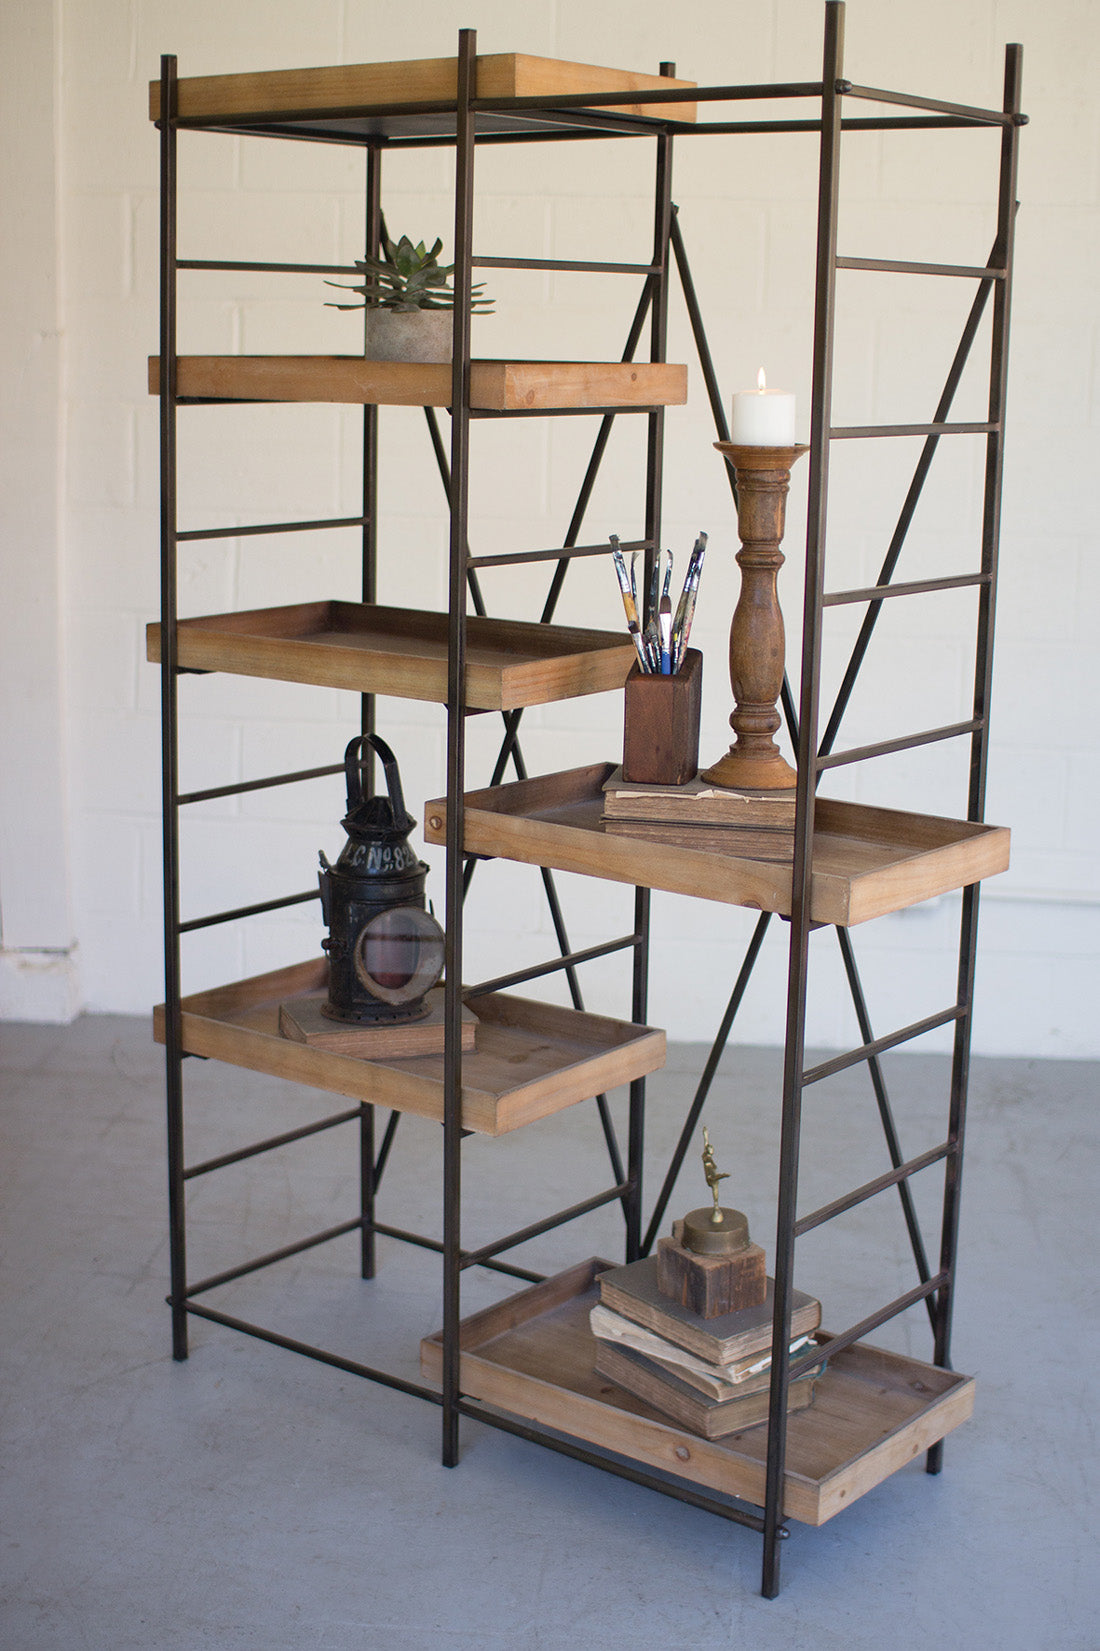 Merveilleux Modern Industrial Rustic Metal And Wood Shelving Unit, Six Adjustable Wooden  Shelves ...